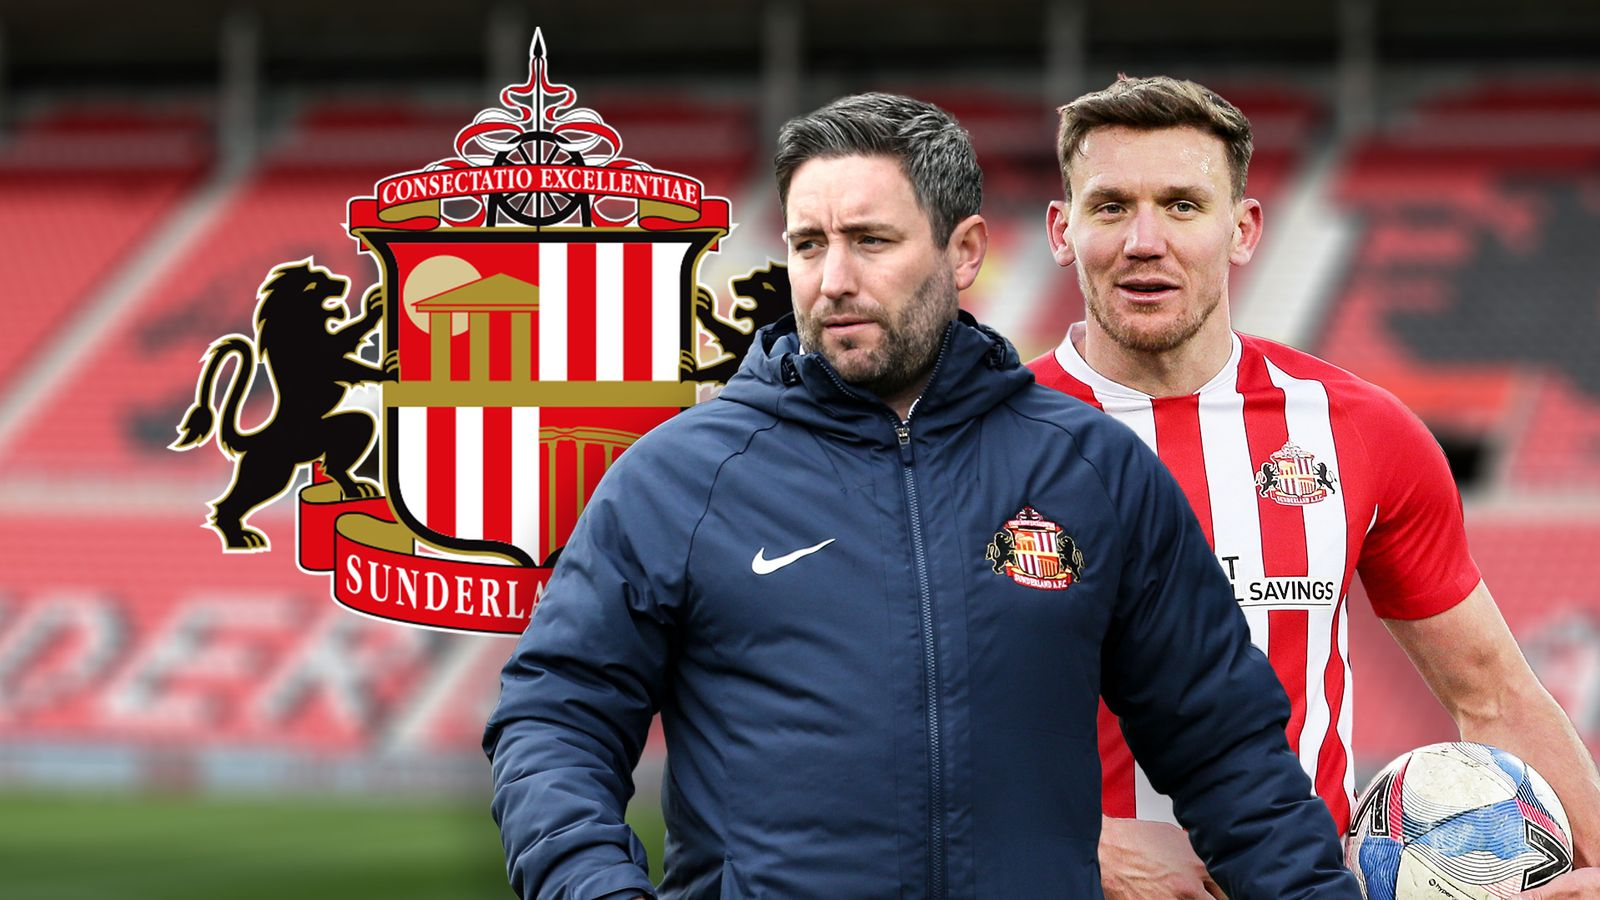 Will Sunderland overcome their League One fatigue as they prepare for play-offs?